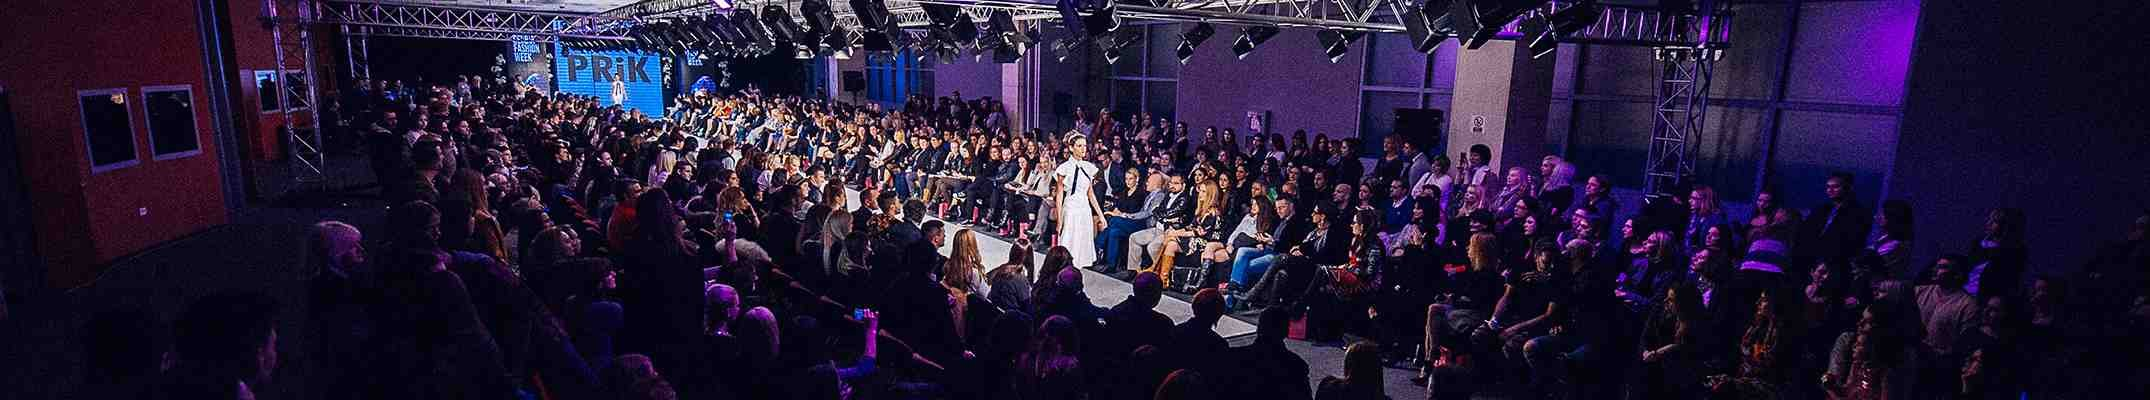 PRiK na Serbia Fashion Week-u